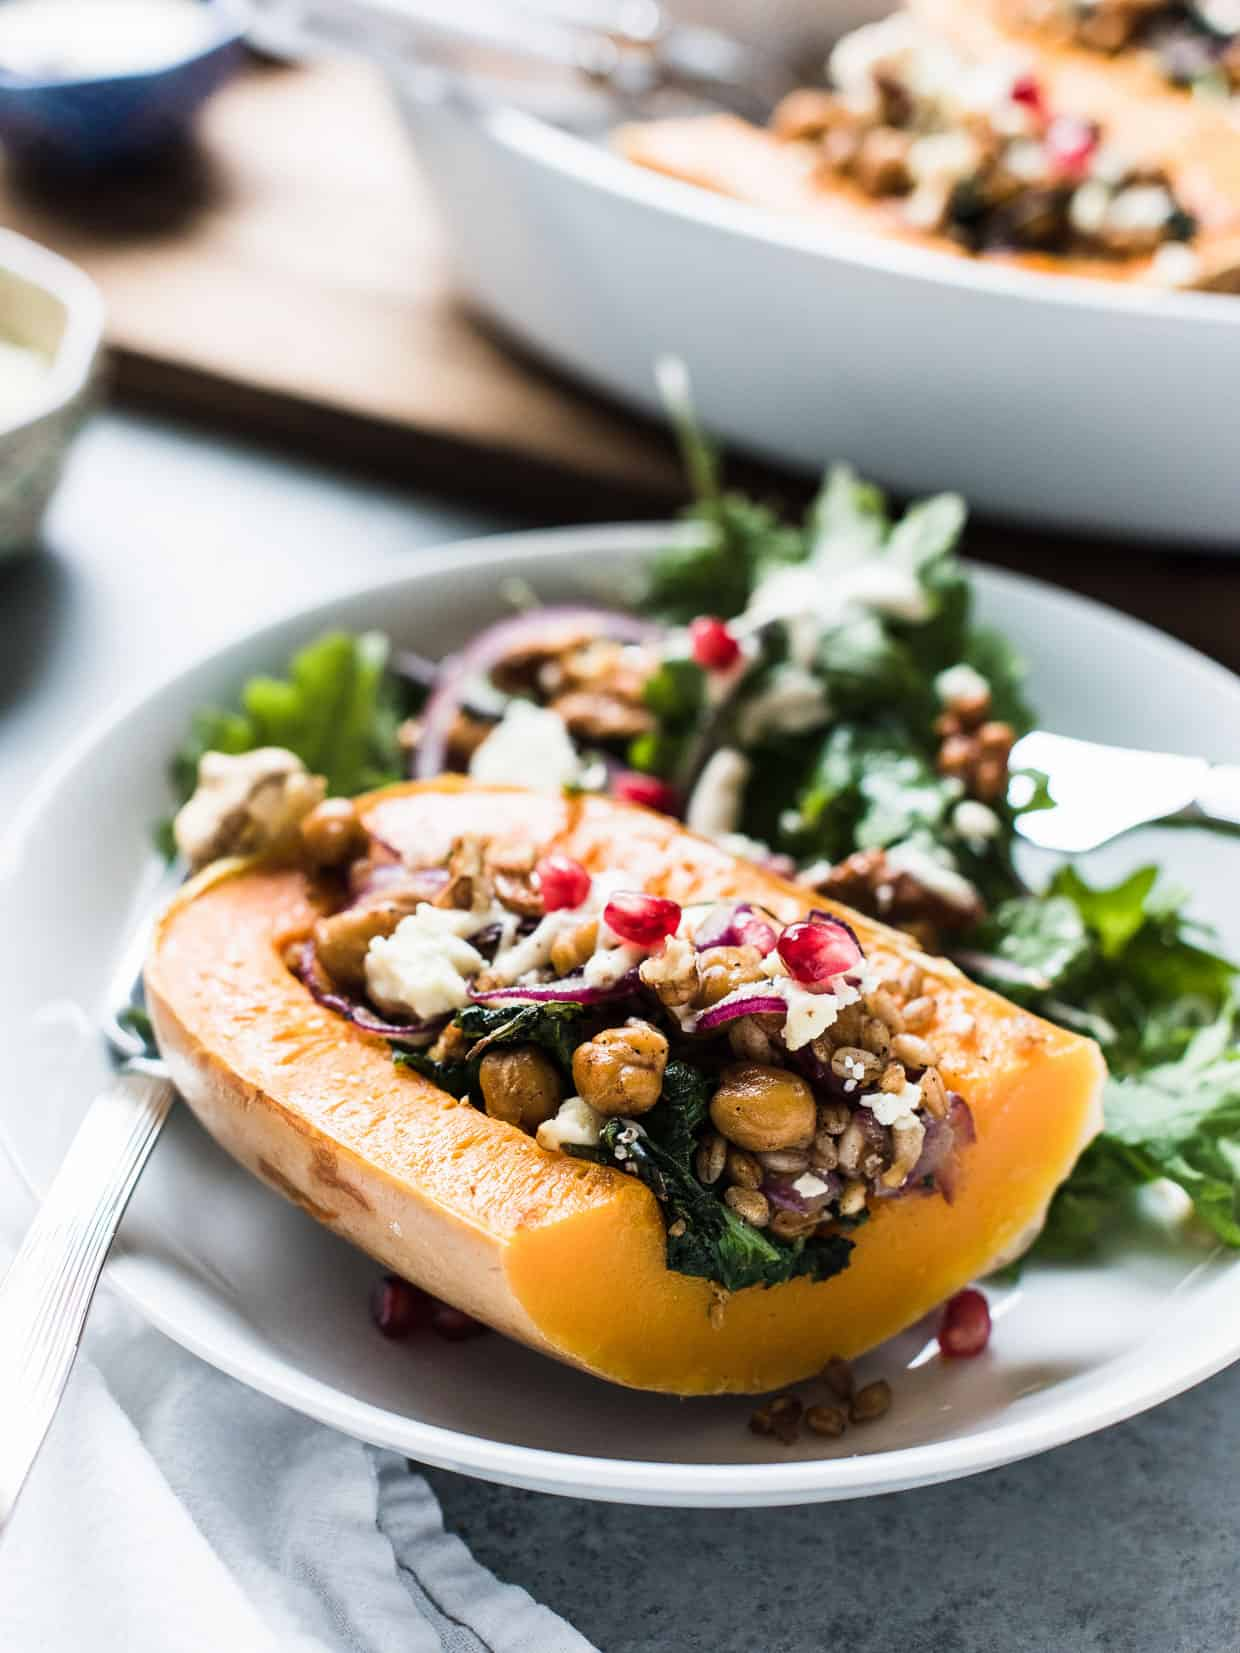 This Stuffed Butternut Squash with Farro, Chickpeas and Kale recipe brings a vegan power bowl to the Thanksgiving table, or turkey day worthy flavors to an easy autumn meal!